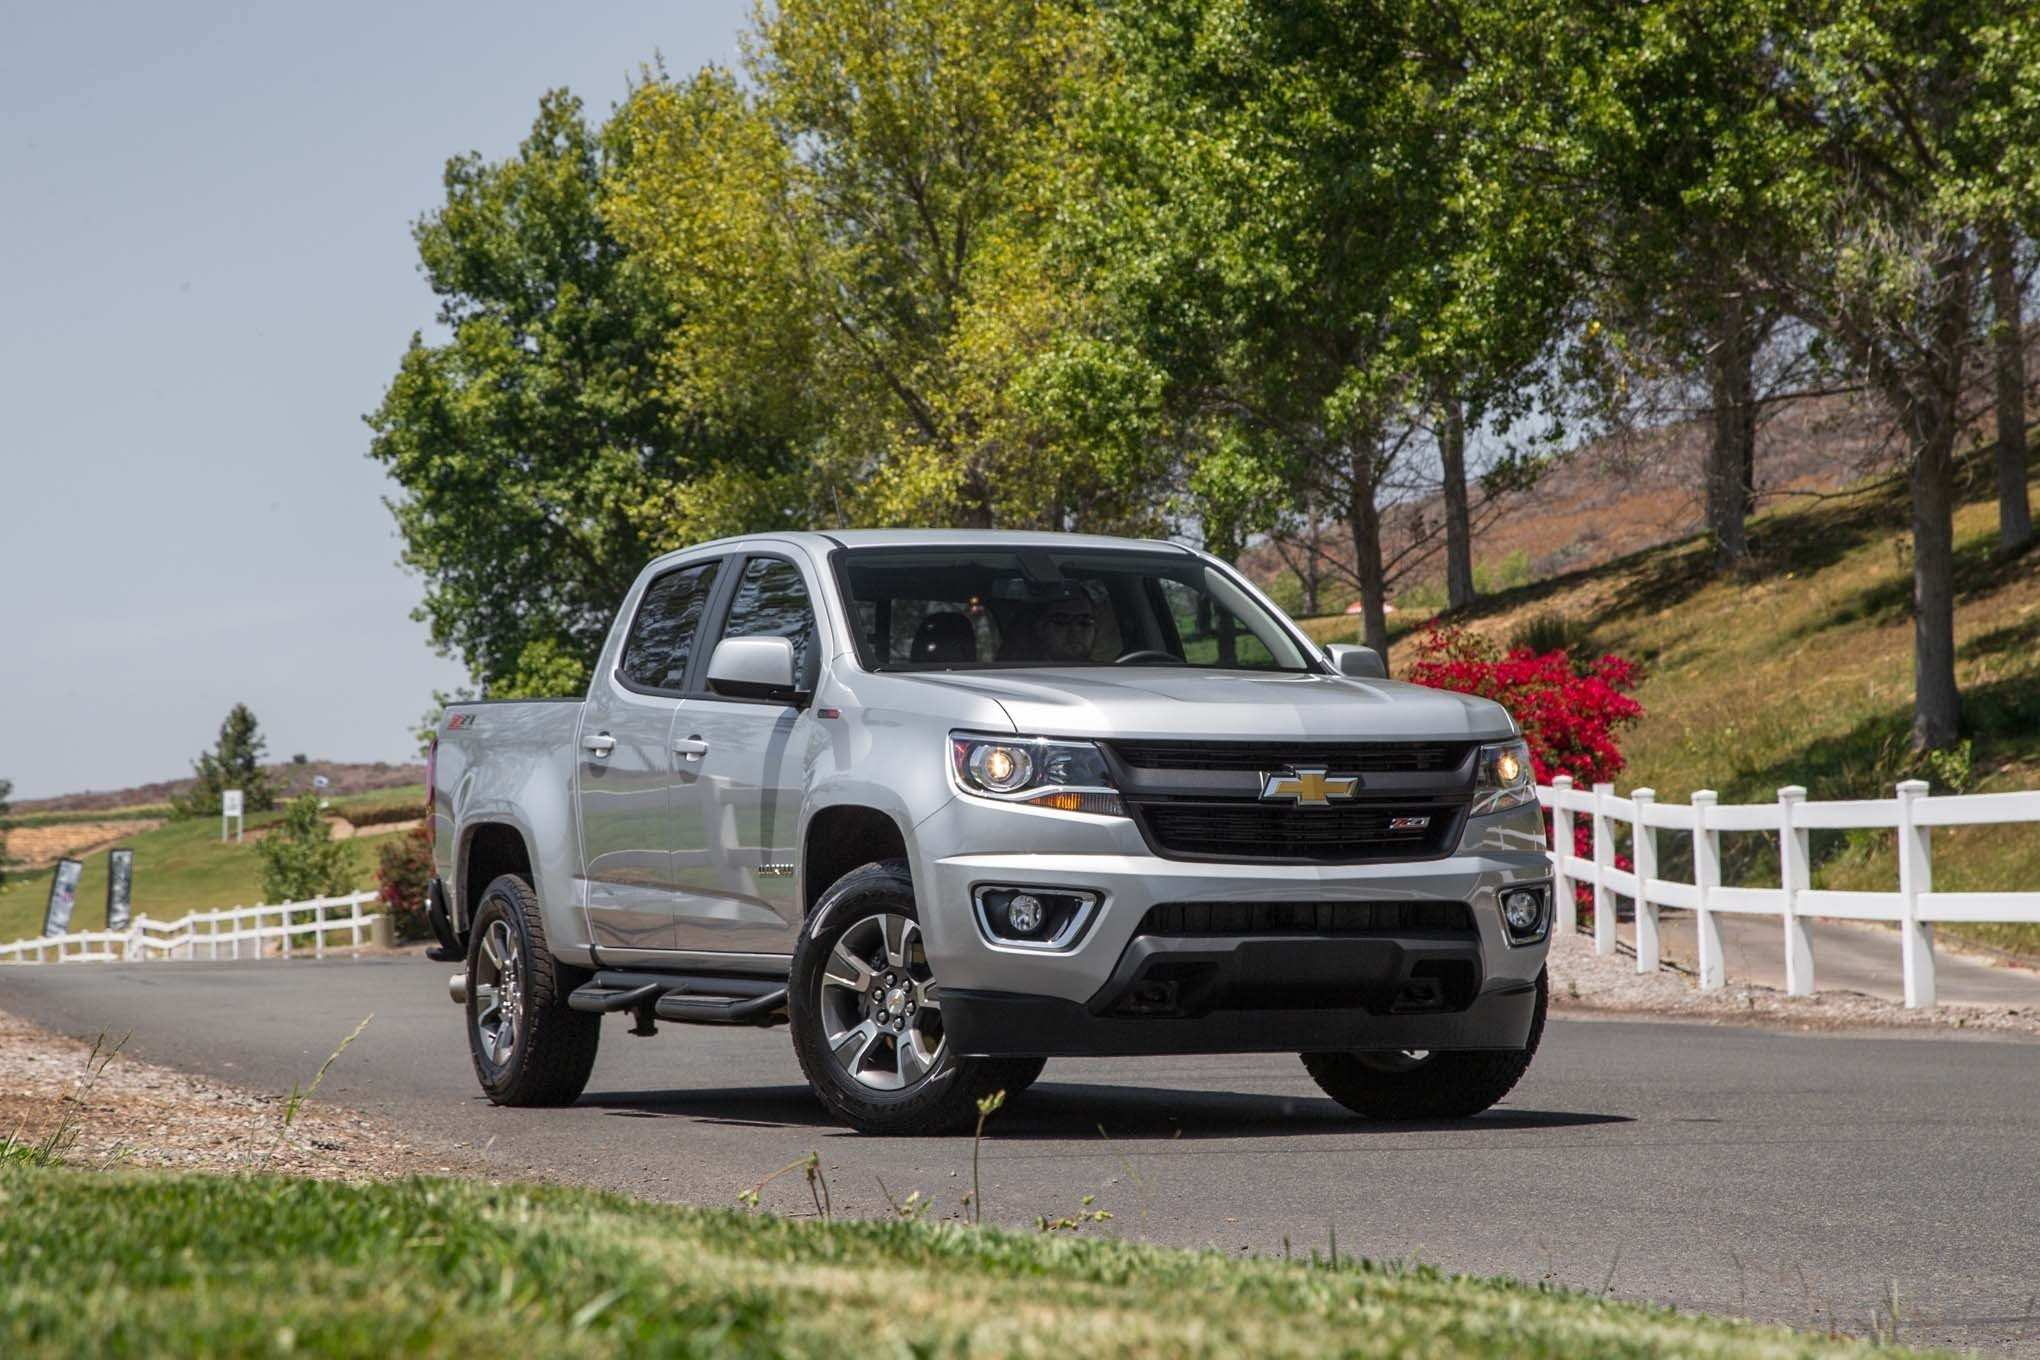 79 The Best 2020 Chevrolet Colorado Z72 Release Date